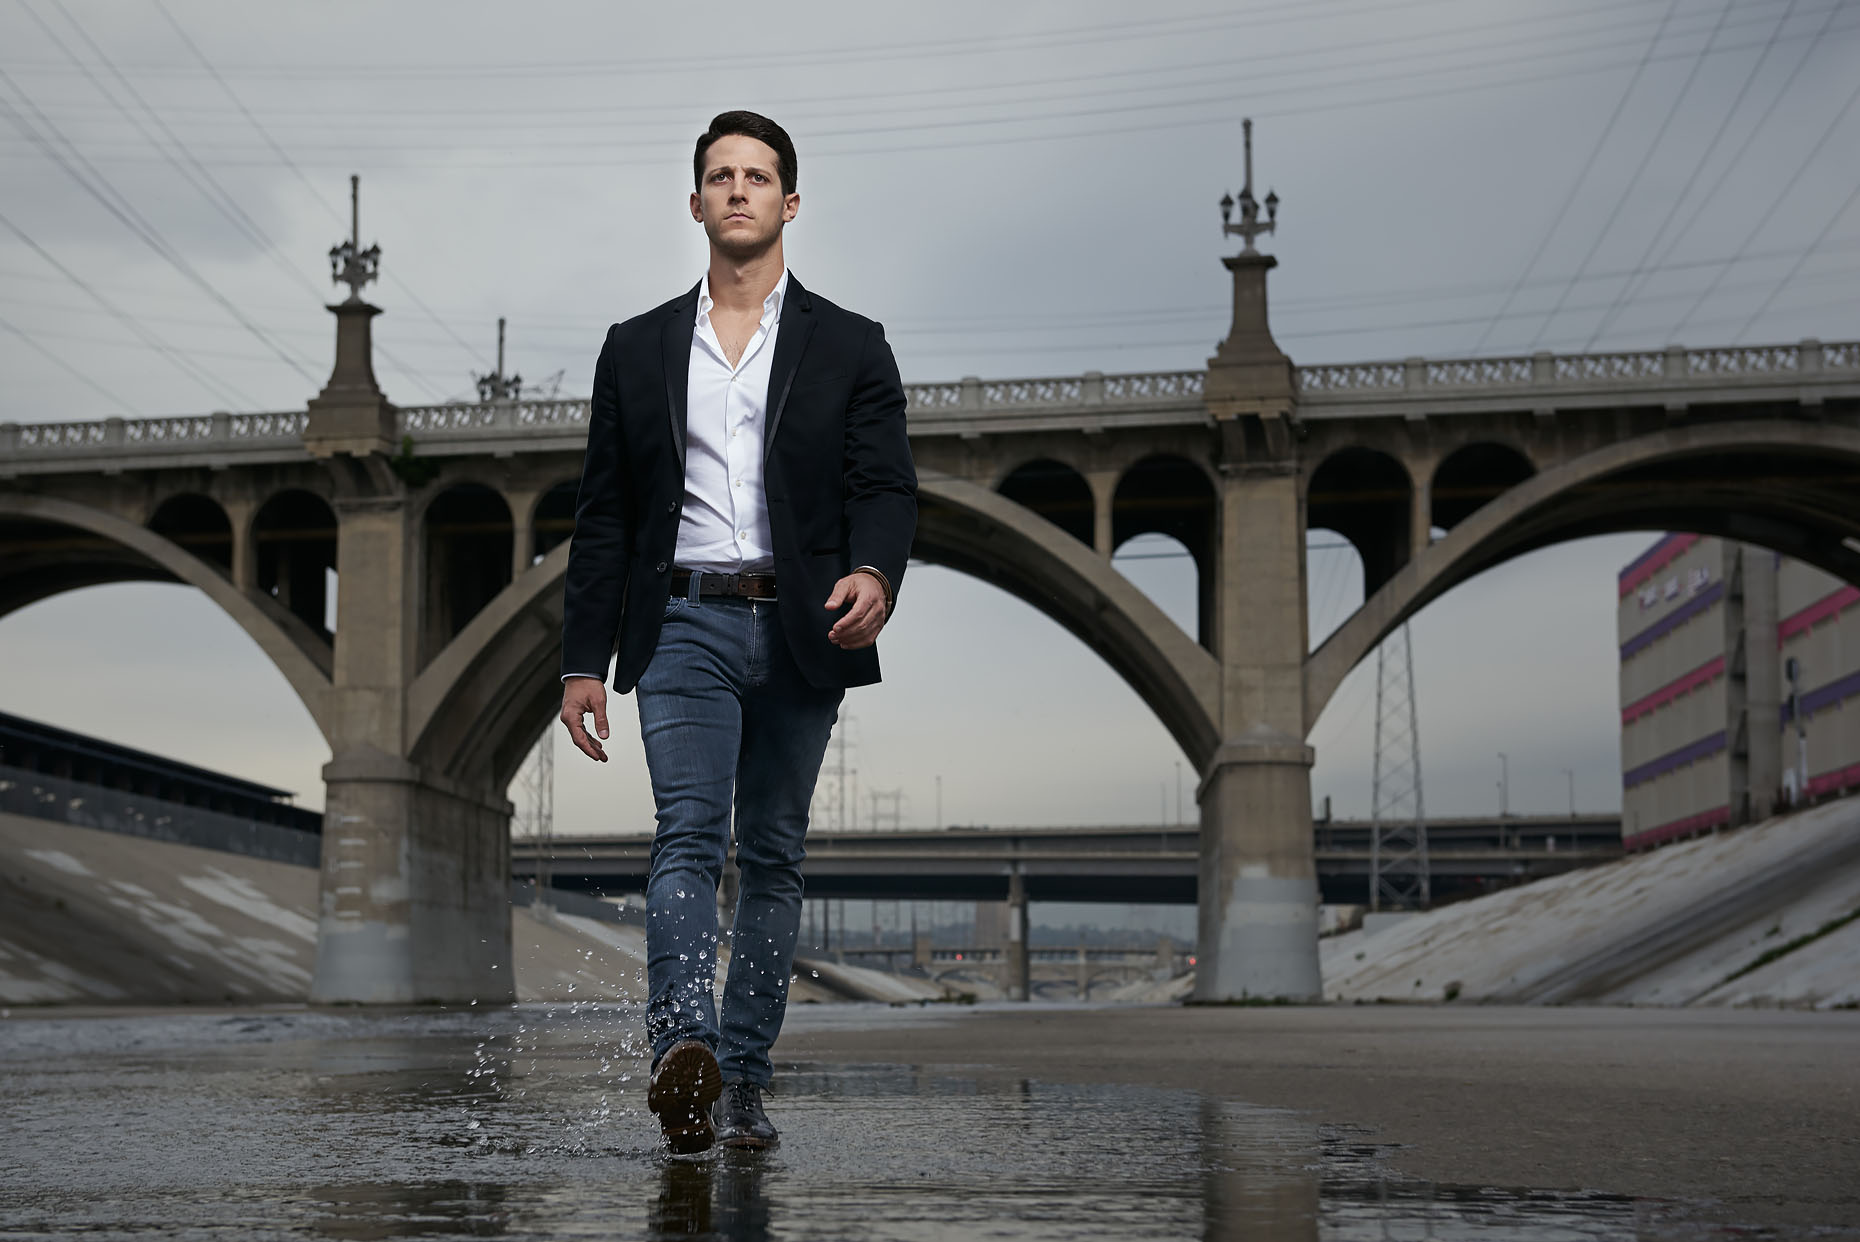 Ryan Alexander walking in the LA river. Los Angeles, CA.